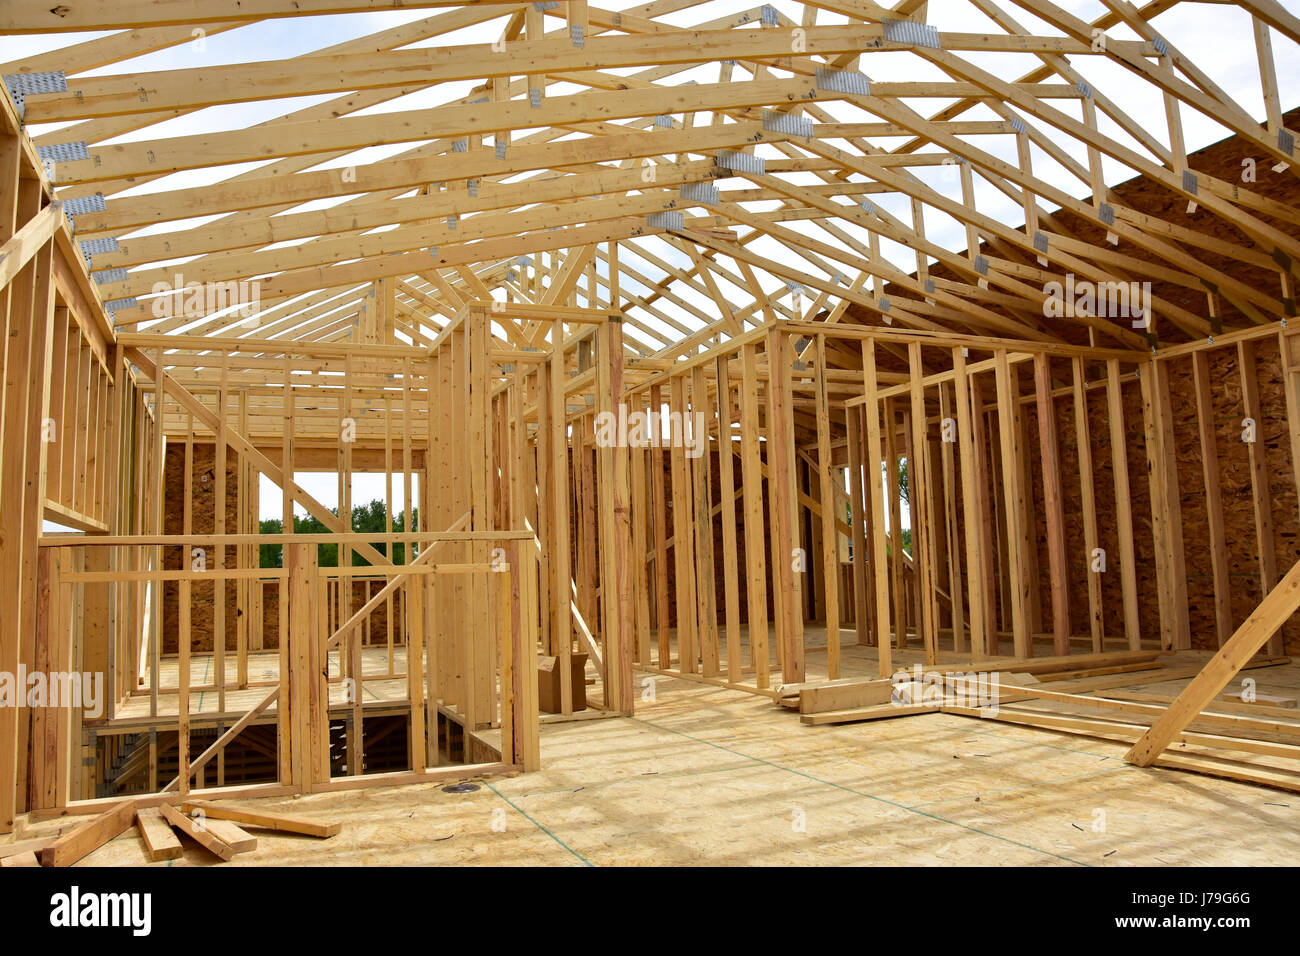 New wood frame homes under construction. - Stock Image